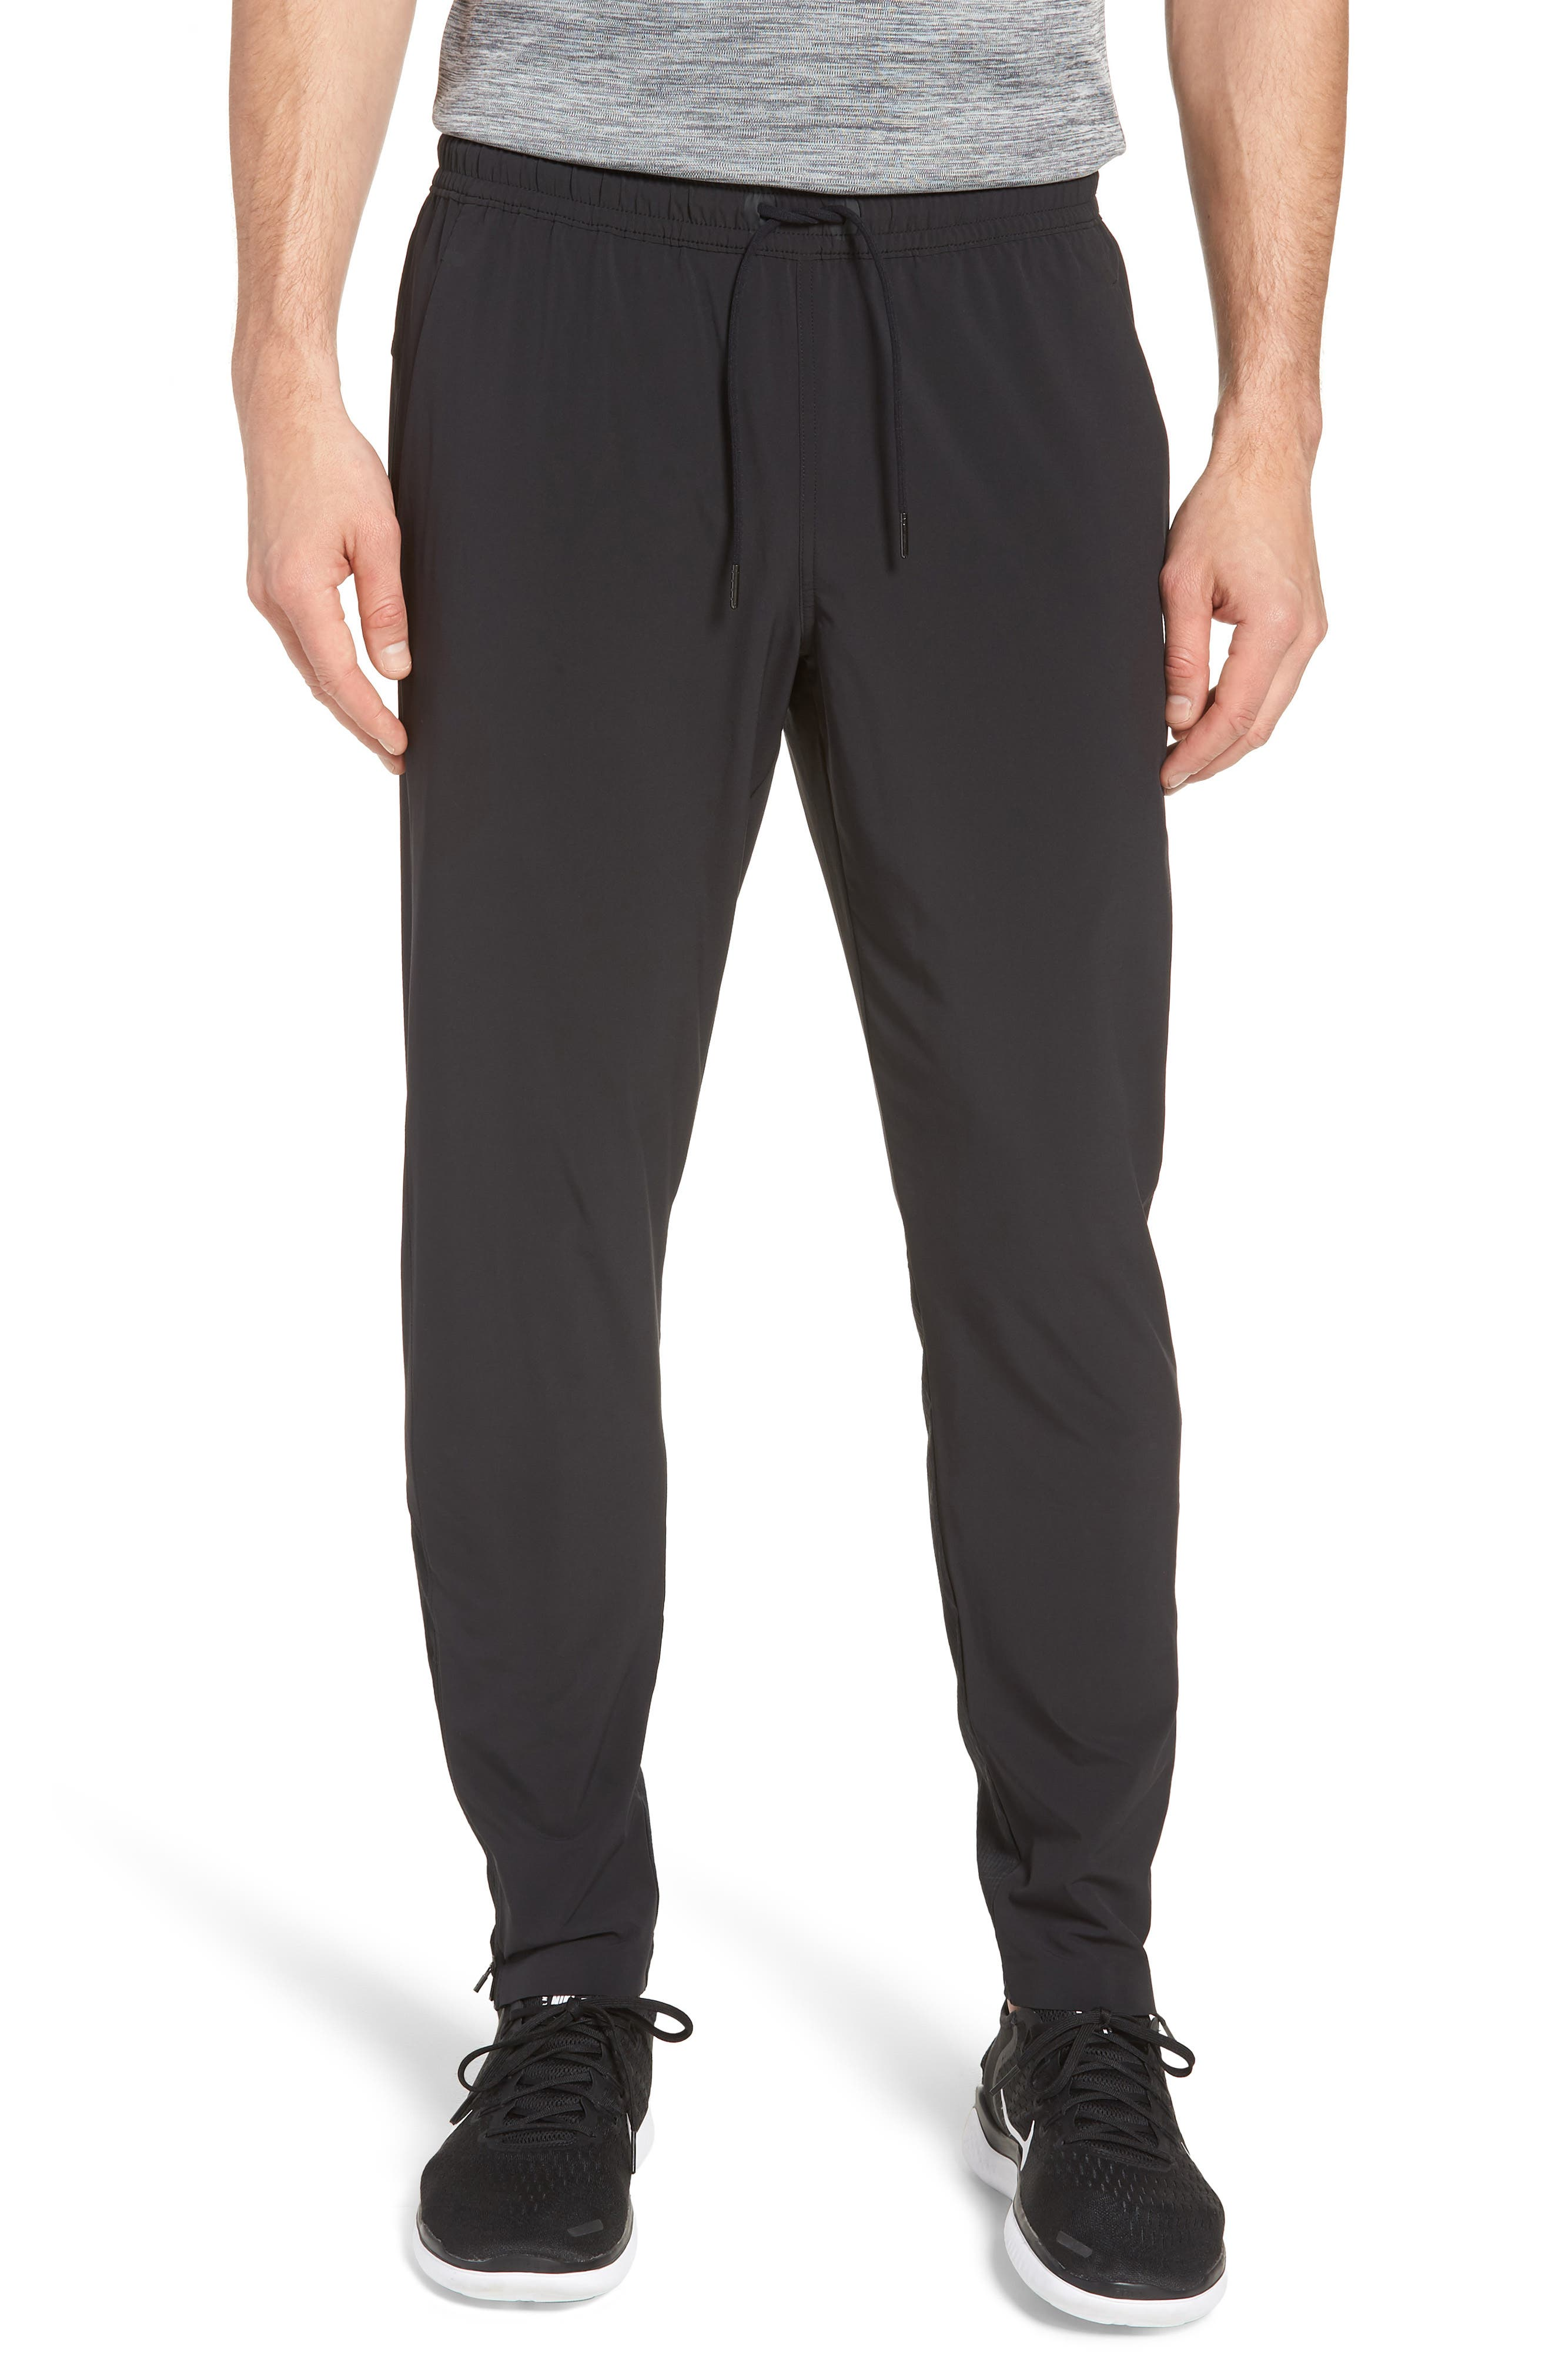 Zella Graphite Tapered Athletic Pants